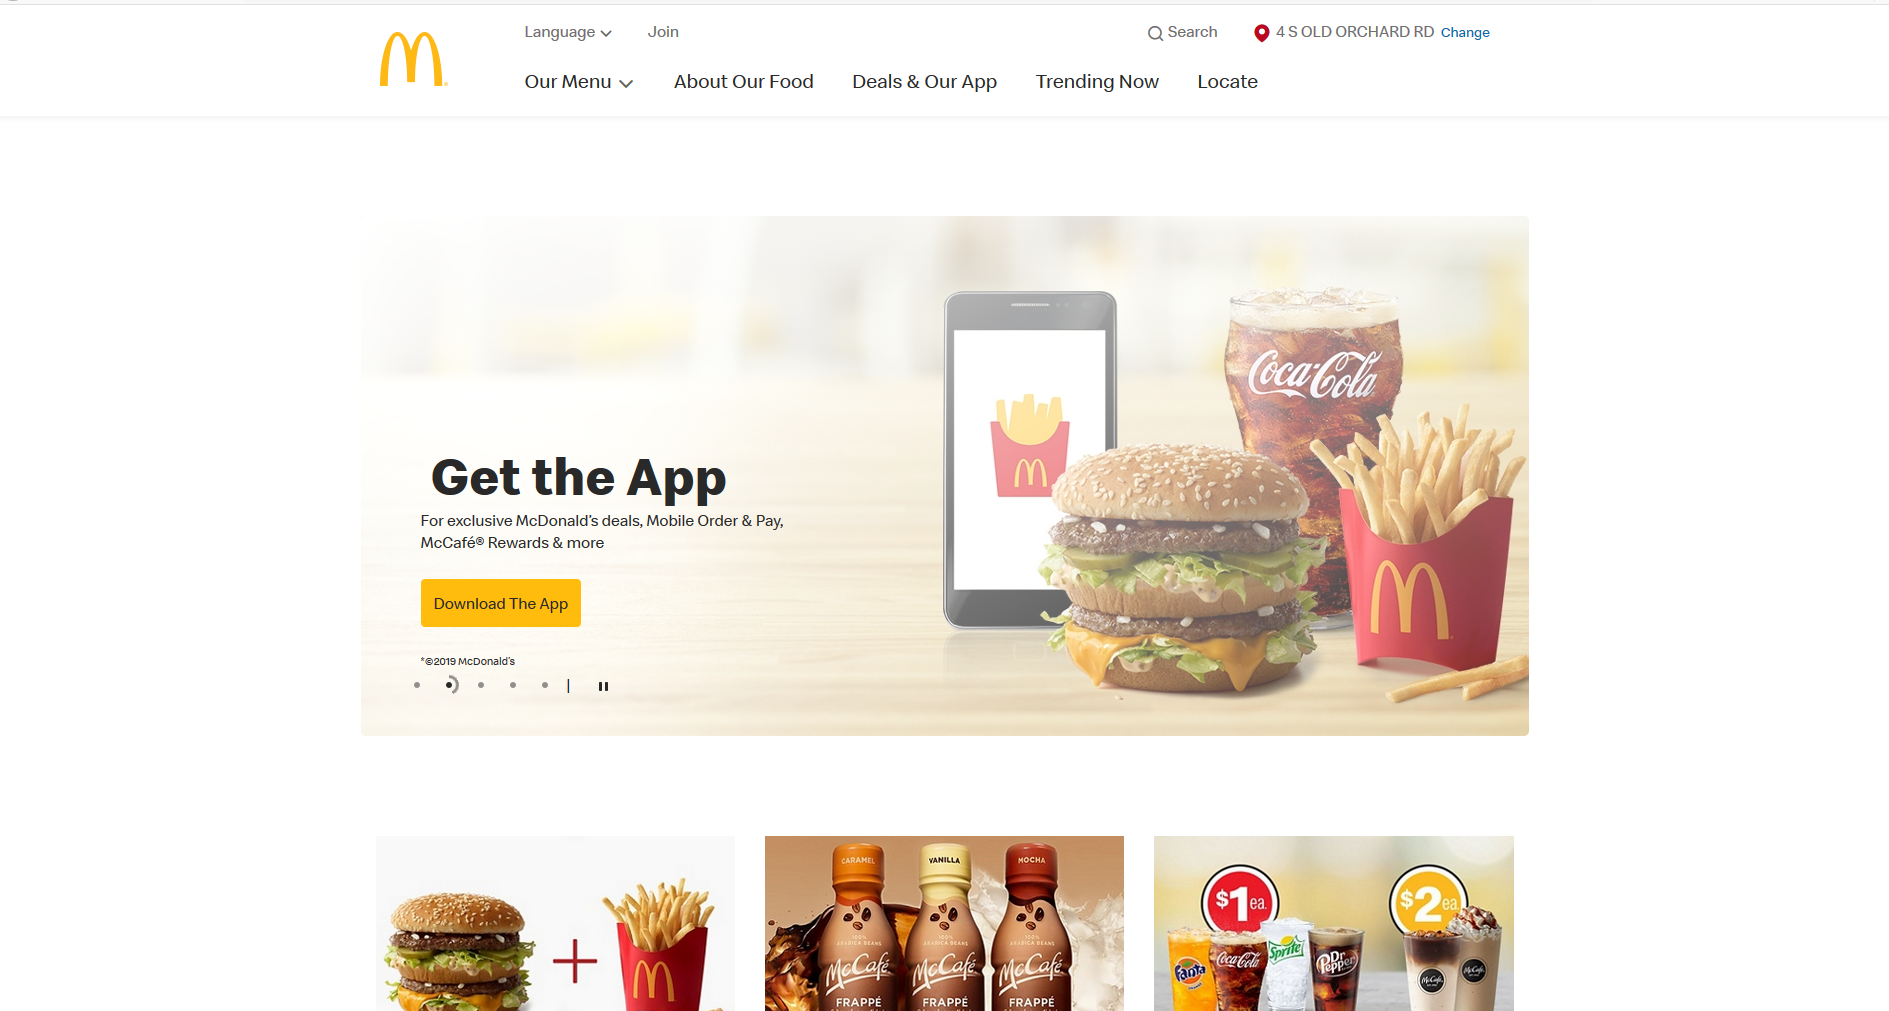 Image of McDonald's USA website as an example of Cross-cultural communication